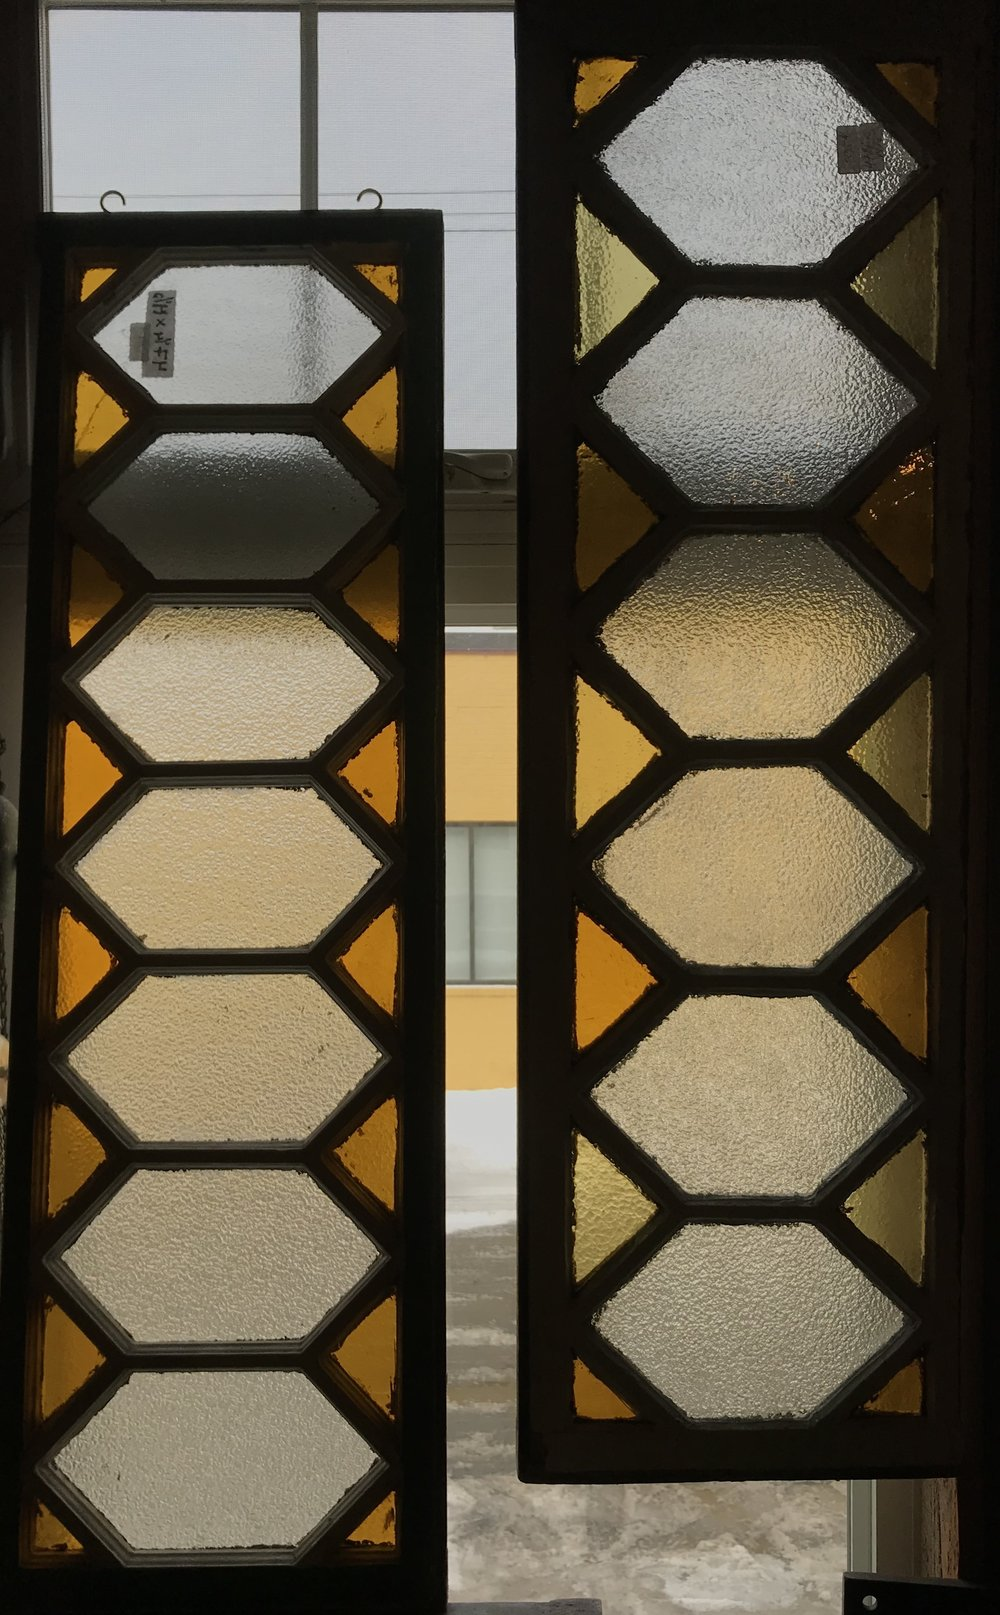 Privacy glass transom windows or sidelights